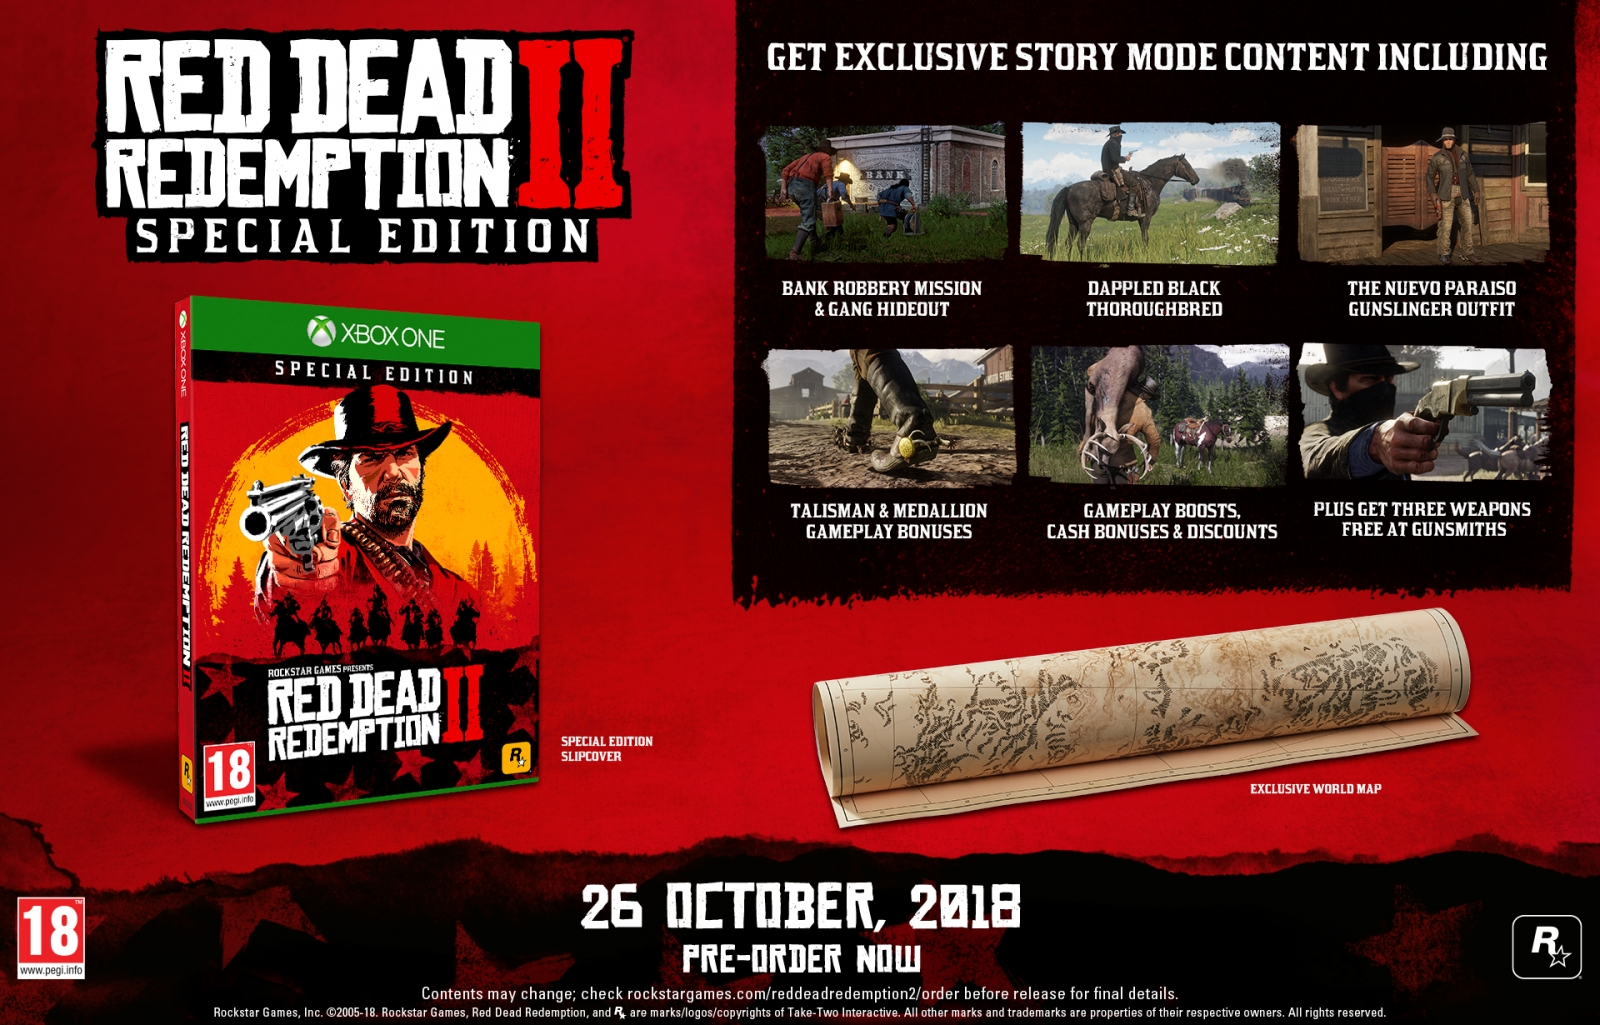 XBOXOne Red Dead Redemption 2 Special Edition